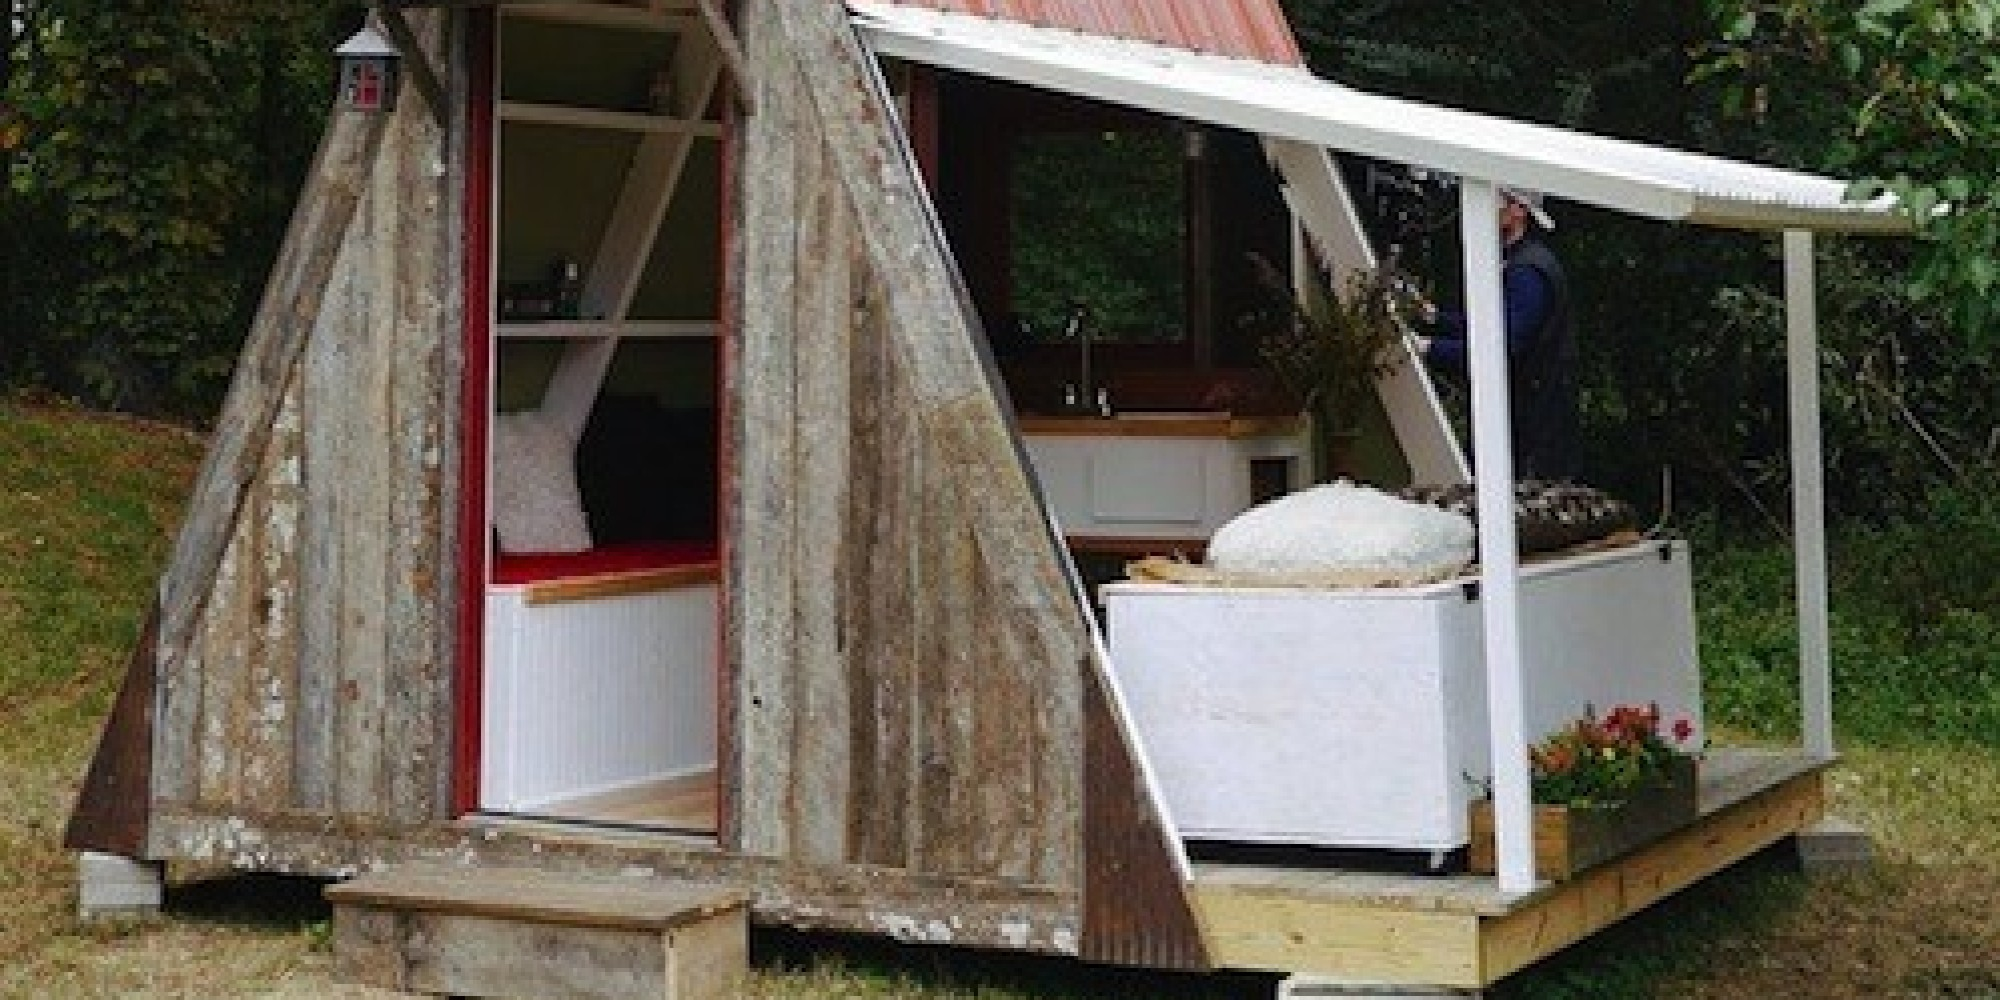 U0027Damn Simpleu0027 Tiny House Costs Just $1,200 To Build Yourself | HuffPost